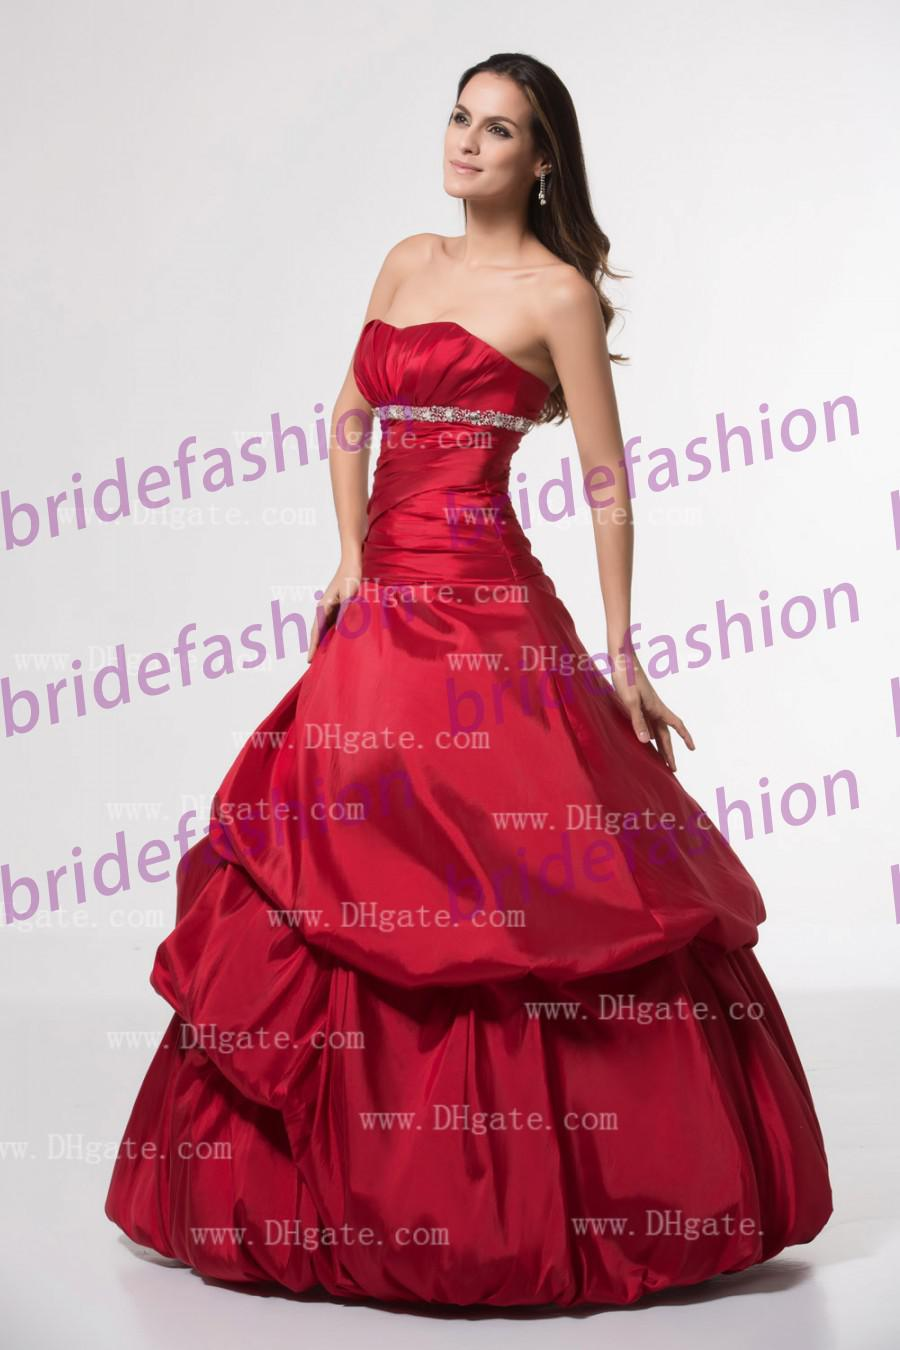 Big Discount!!2013 Hot Sale Princess Style Strapless Ball Gown Crystal Custom Made Satin Quinceanera Dresses